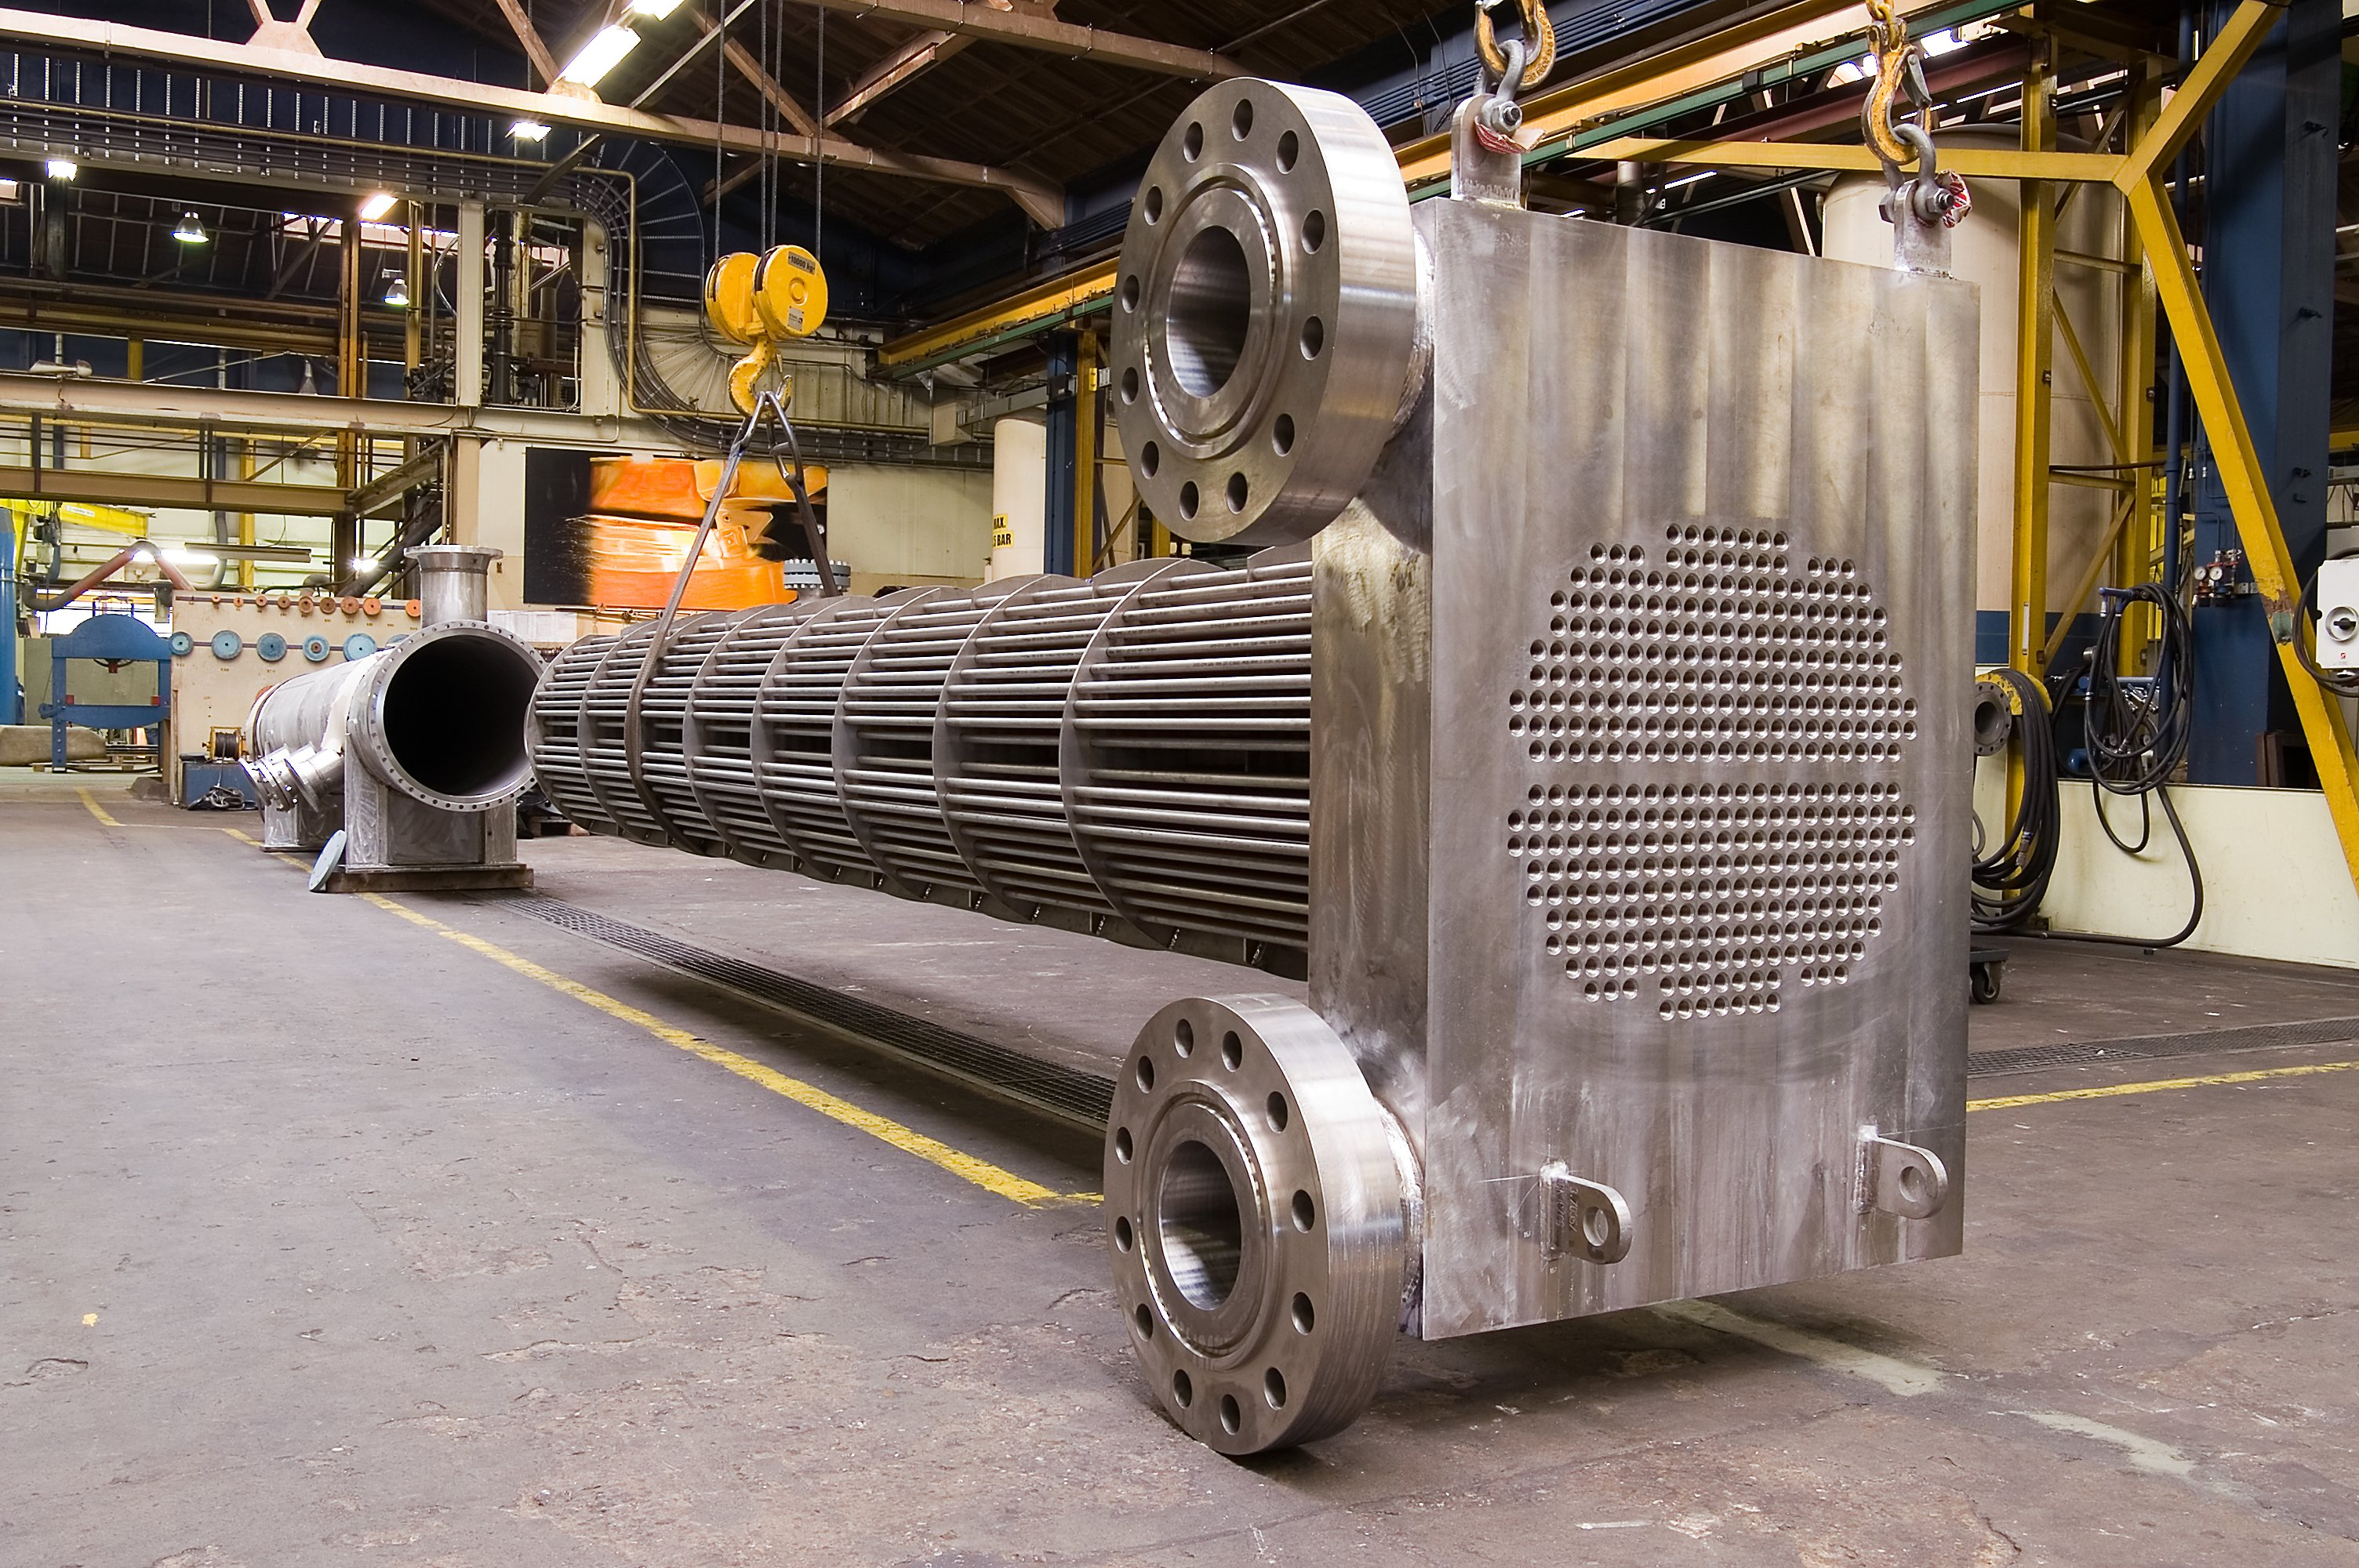 Dhell & tube heat exchanger (compact header)